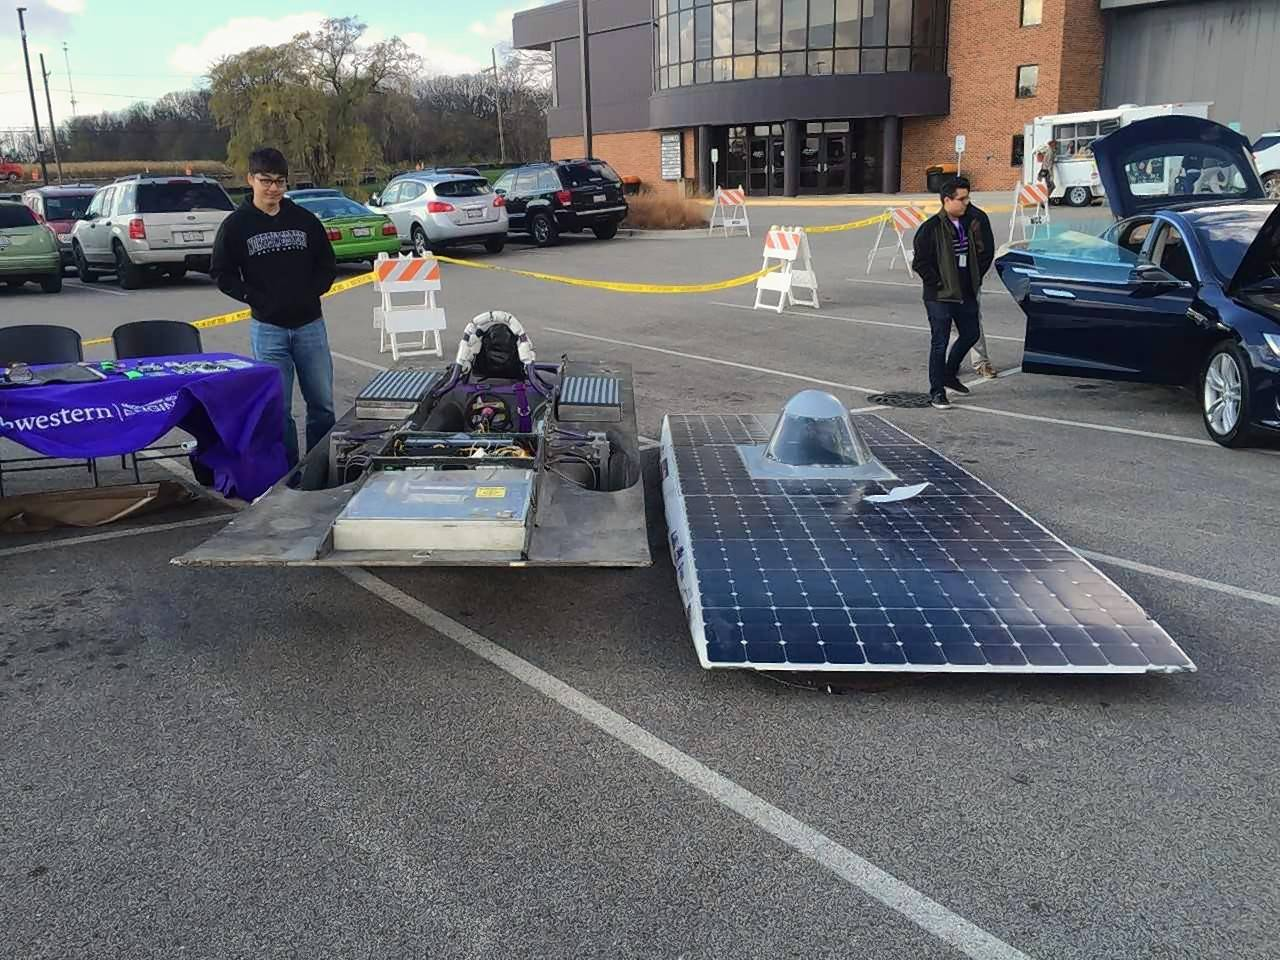 Students from Northern Illinois University and Northwestern University will display high-mileage and solar cars and educate attendees at McHenry County College's annual Green Living Expo on Nov. 3. The expo will feature a variety of sustainable resources and vendors, electric cars, and electric and conventional bikes.